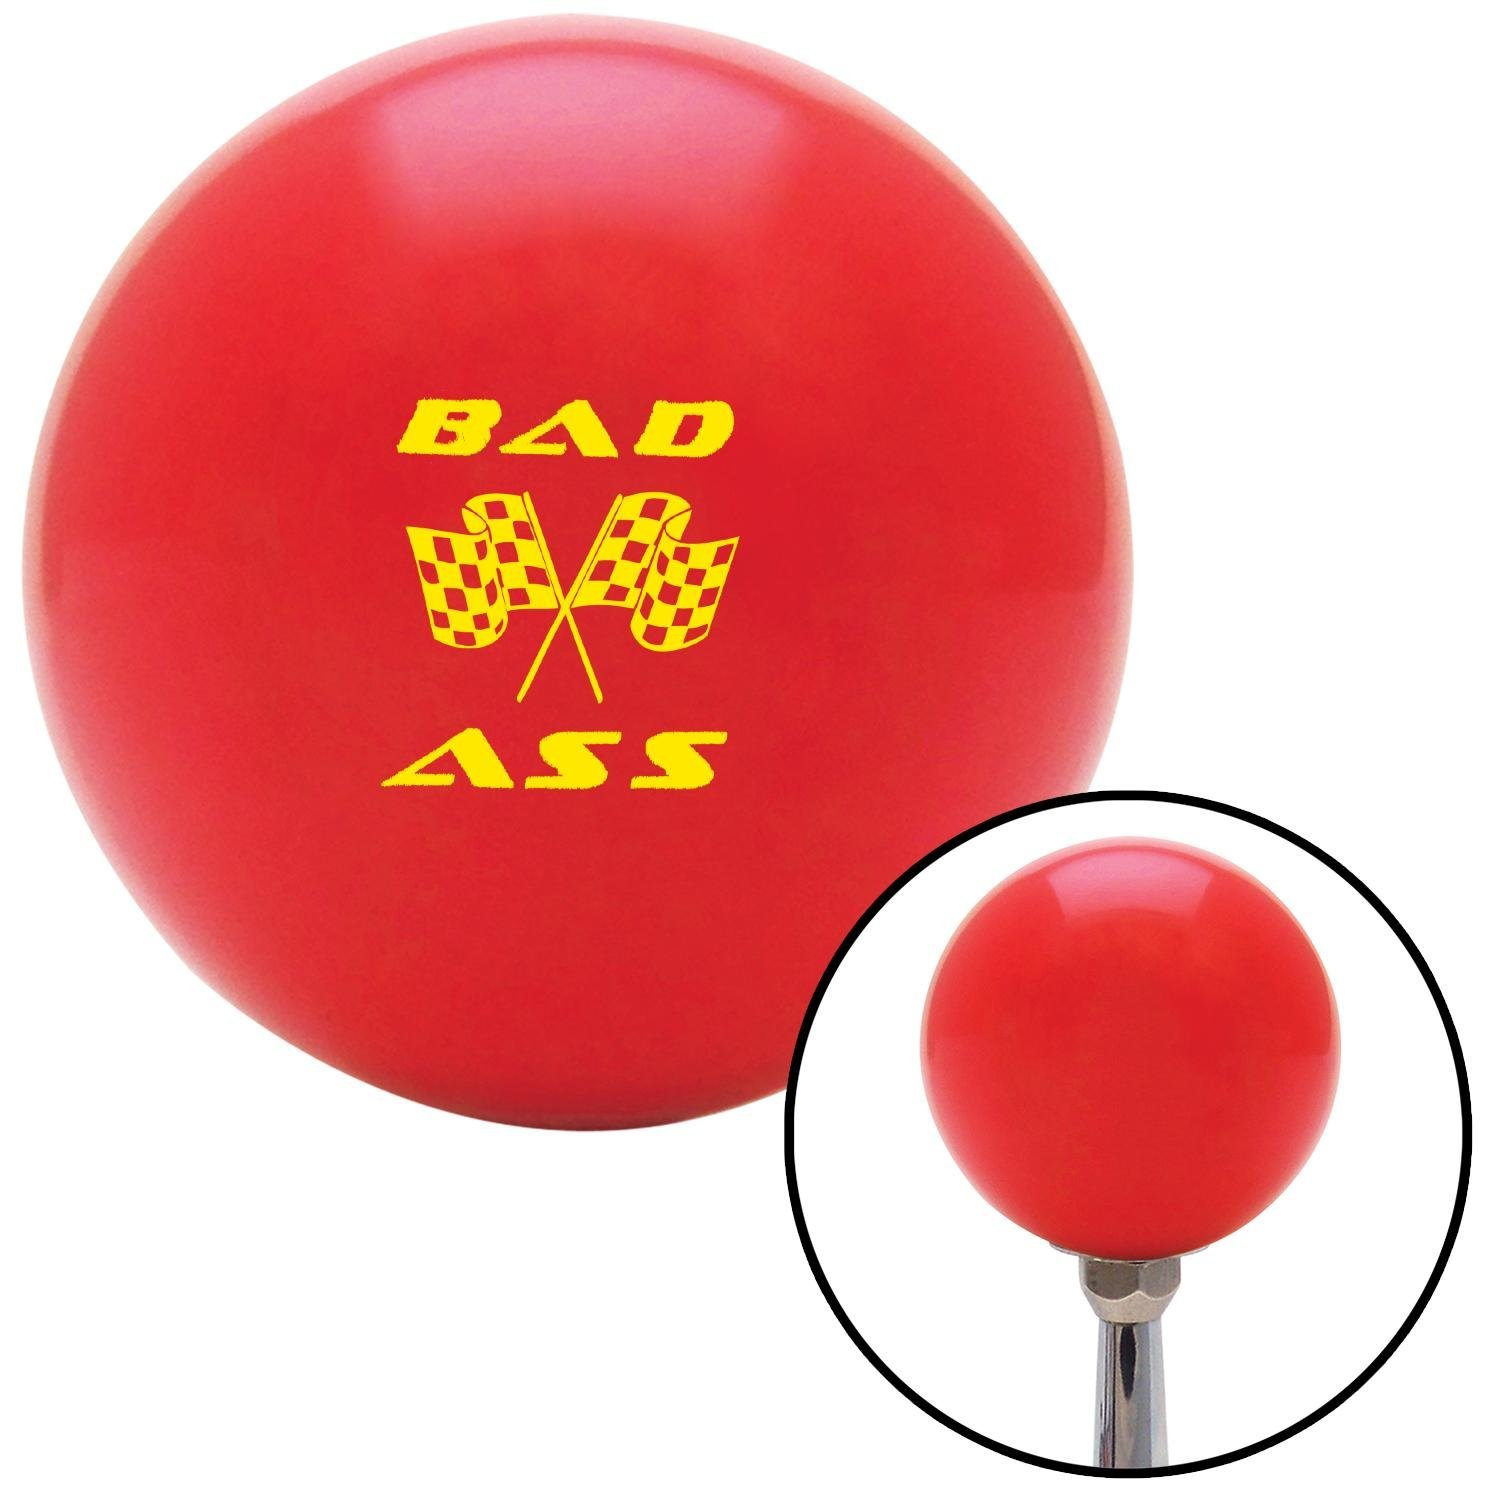 American Shifter 94277 Red Shift Knob with M16 x 1.5 Insert Yellow Bad Ass Flags